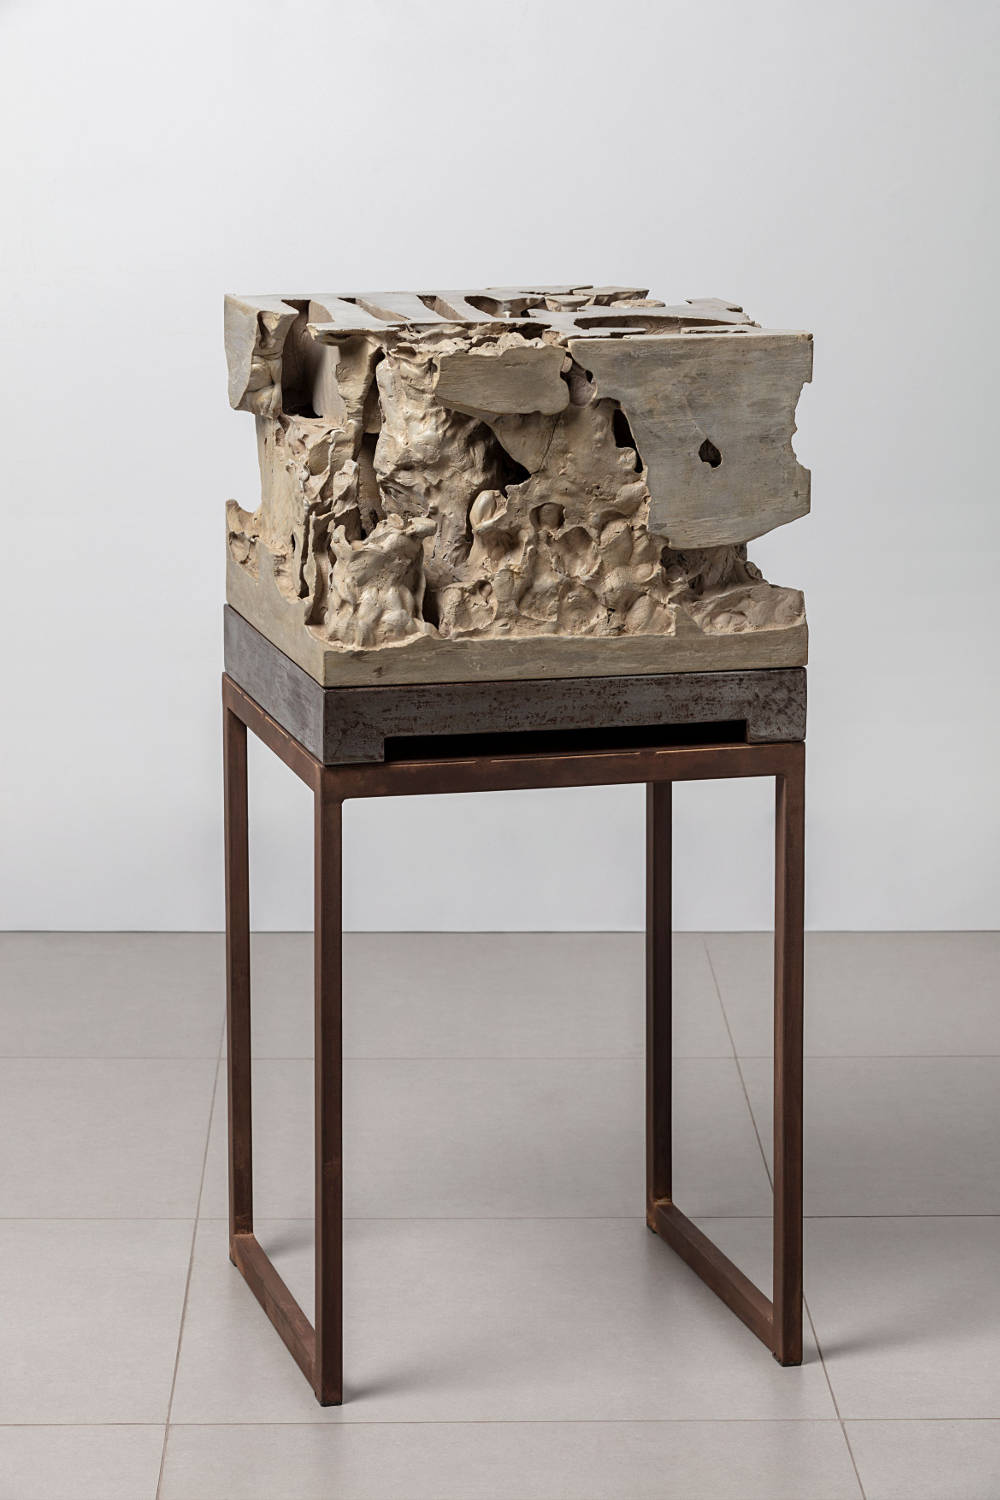 Anna Maria Maiolino, Untitled, from Da Terra series - Errância Poética (From the Earth series - Poetic Wanderings), 2018. Mortar and varnish coating on metal table 30 x 45 x 44 cm / 11 3/4 x 17 3/4 x 17 3/8 inches © Anna Maria Maiolino. Courtesy the artist and Hauser & Wirth. Photo: Everton Ballardin